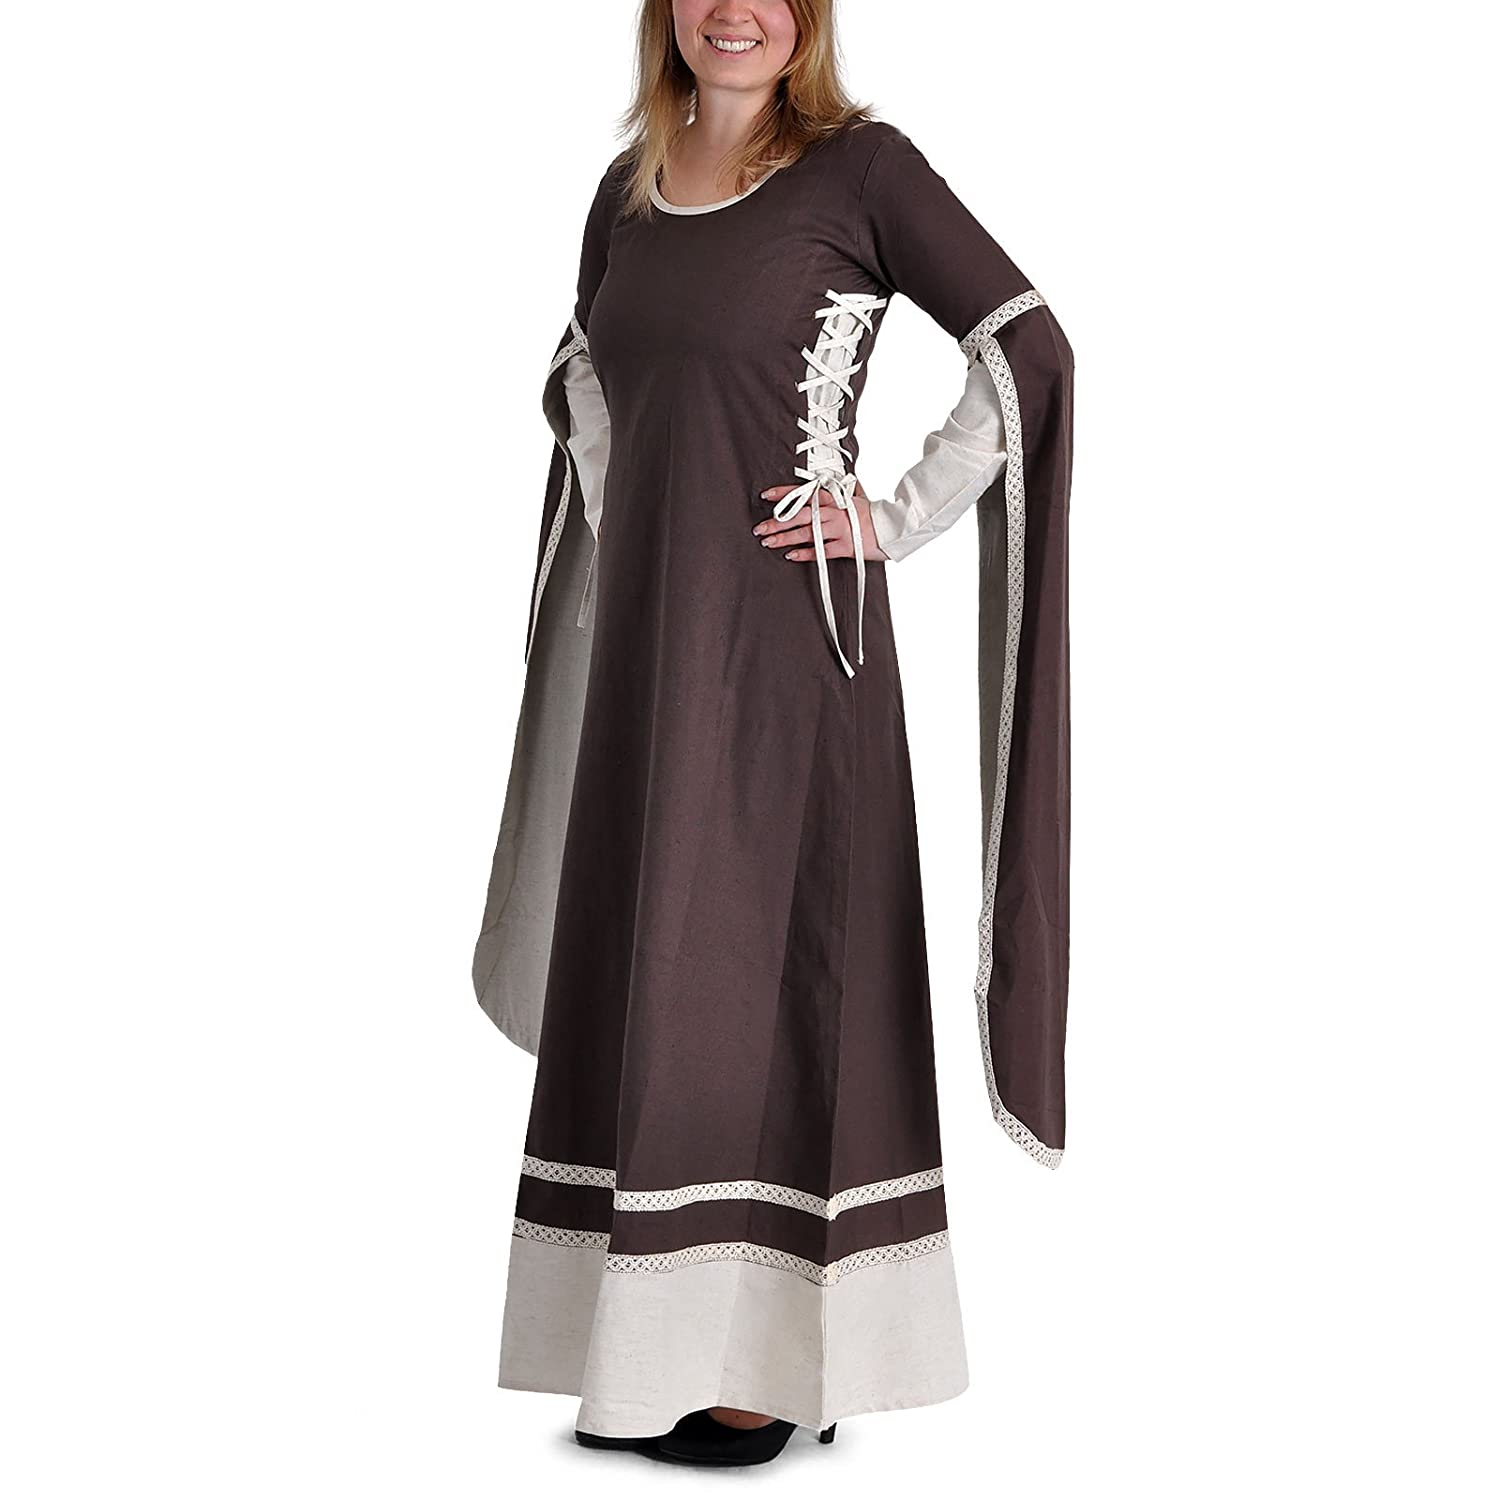 Medieval Dress Long with Side Lacing Bicolour Garment Floor Length Sleeves Brown Natural